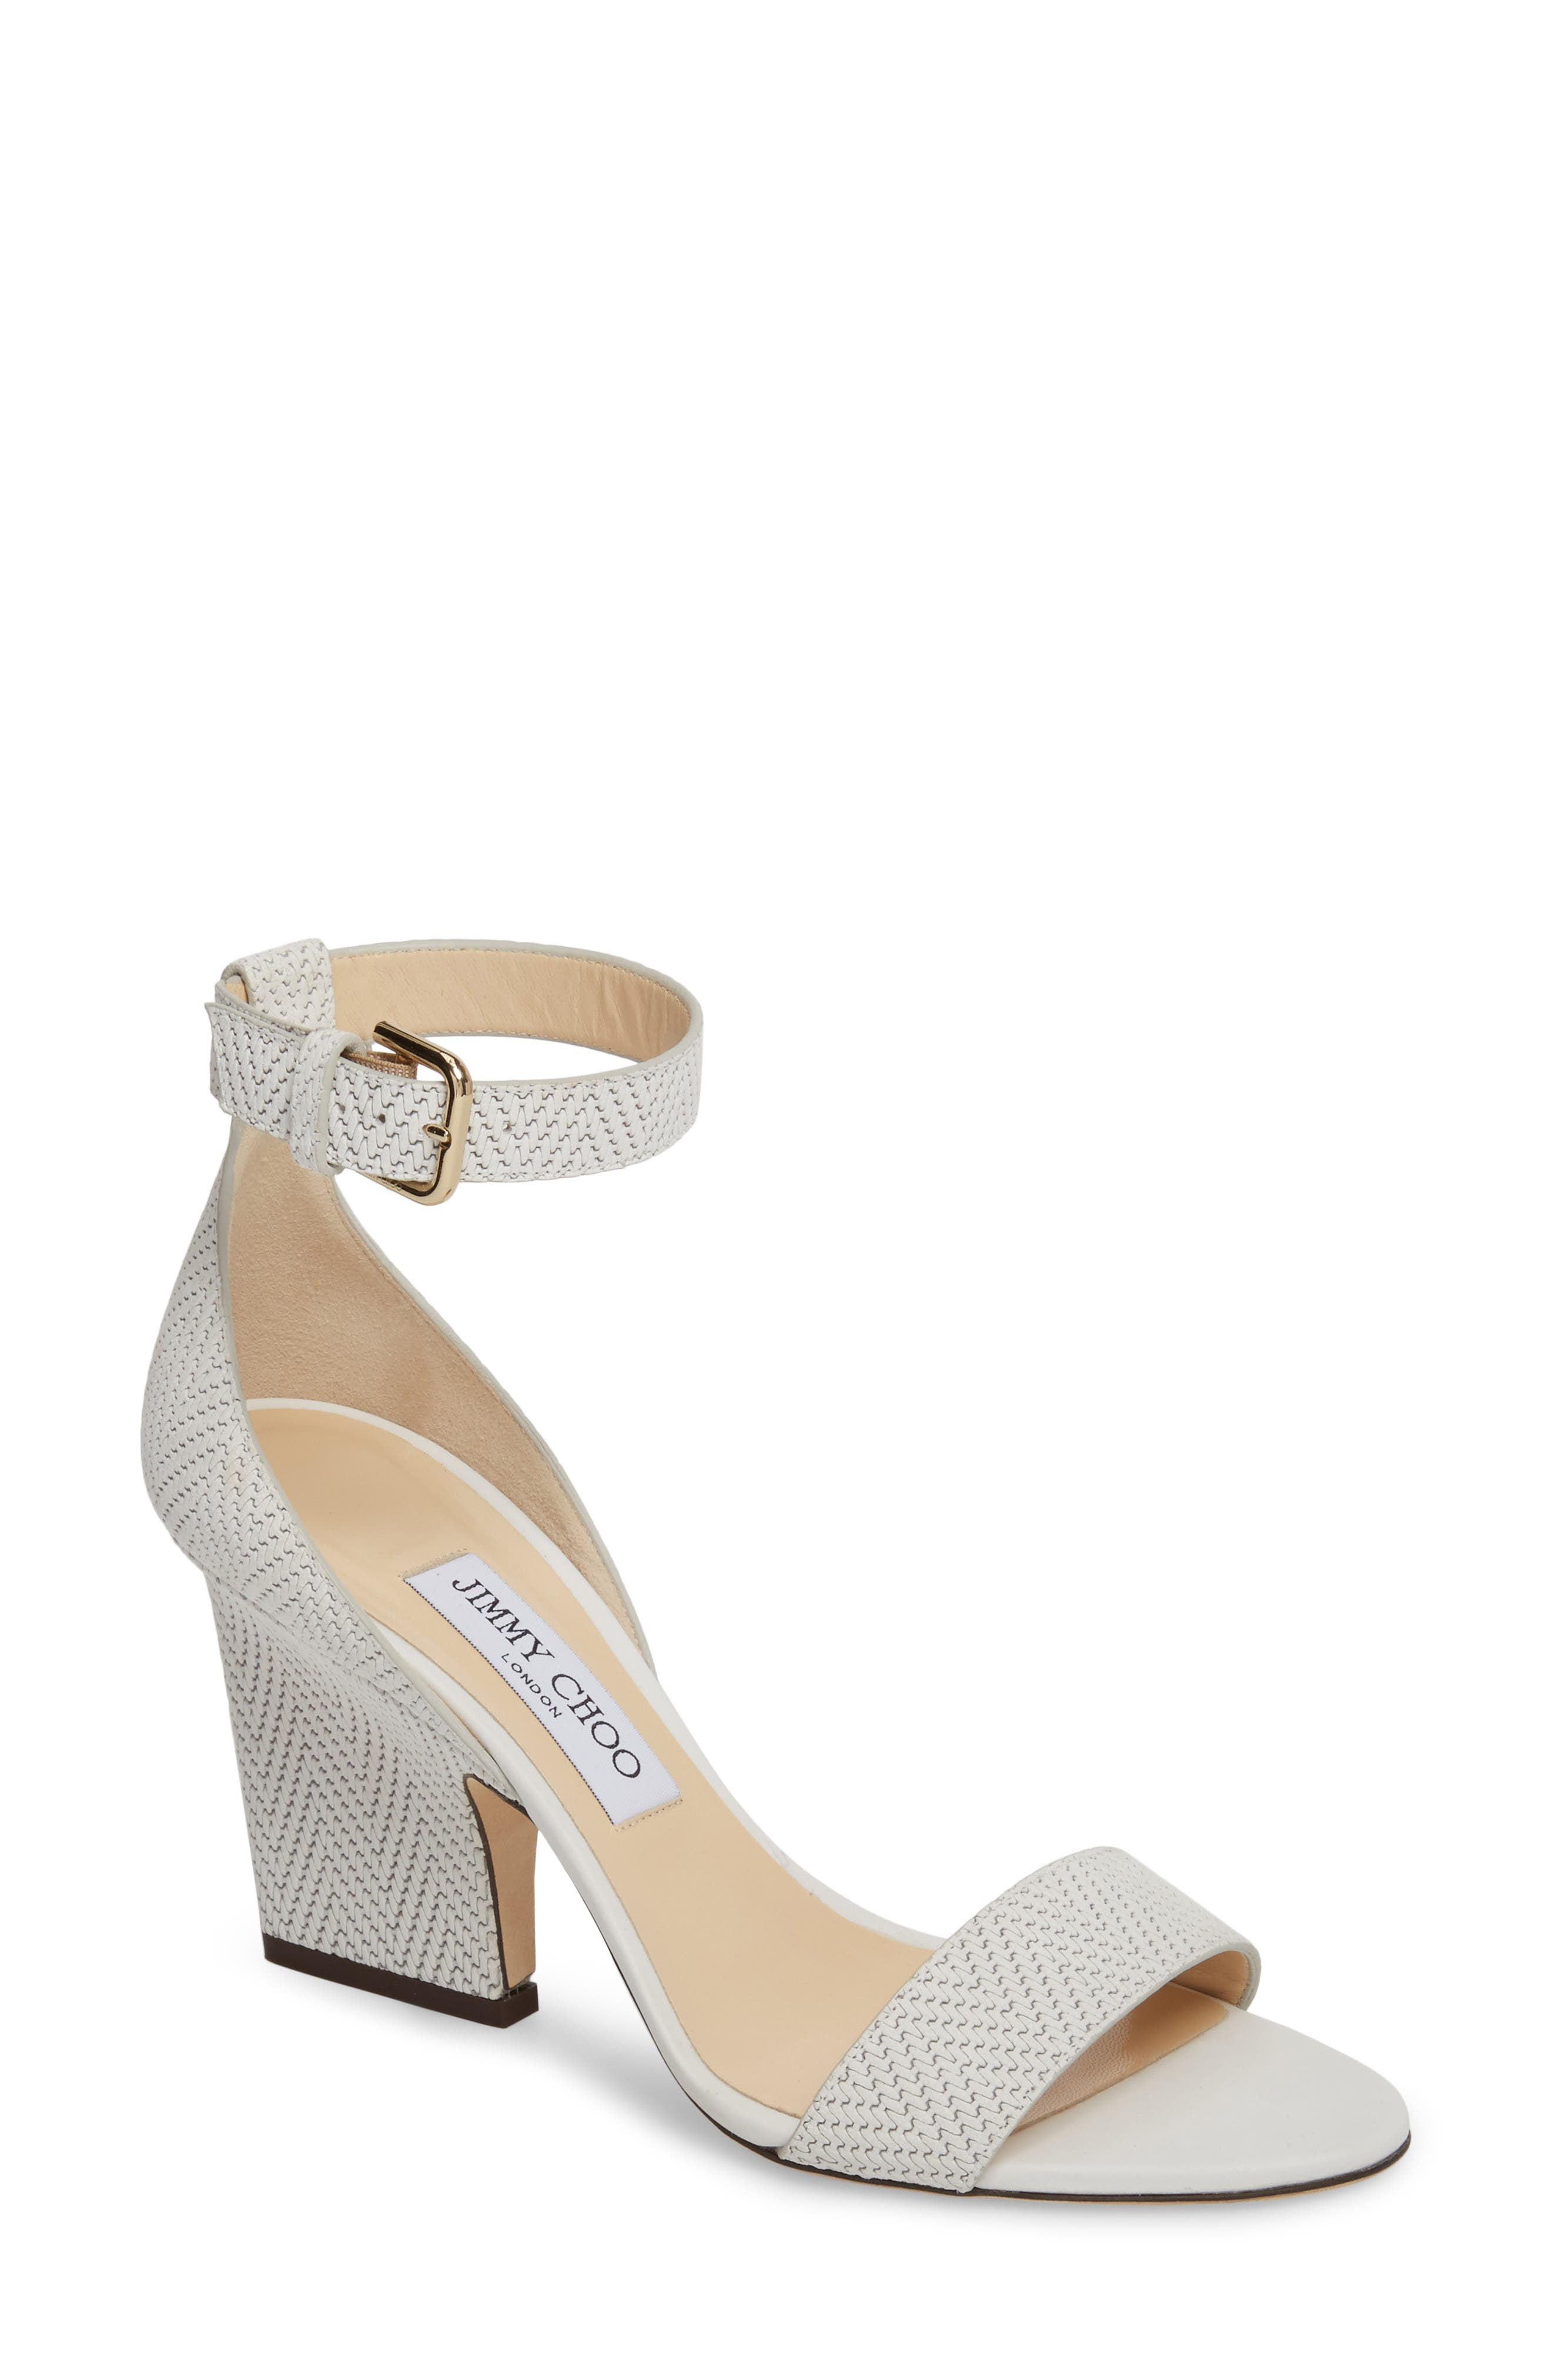 Jimmy Choo Edina Ankle Strap Sandal (Women)